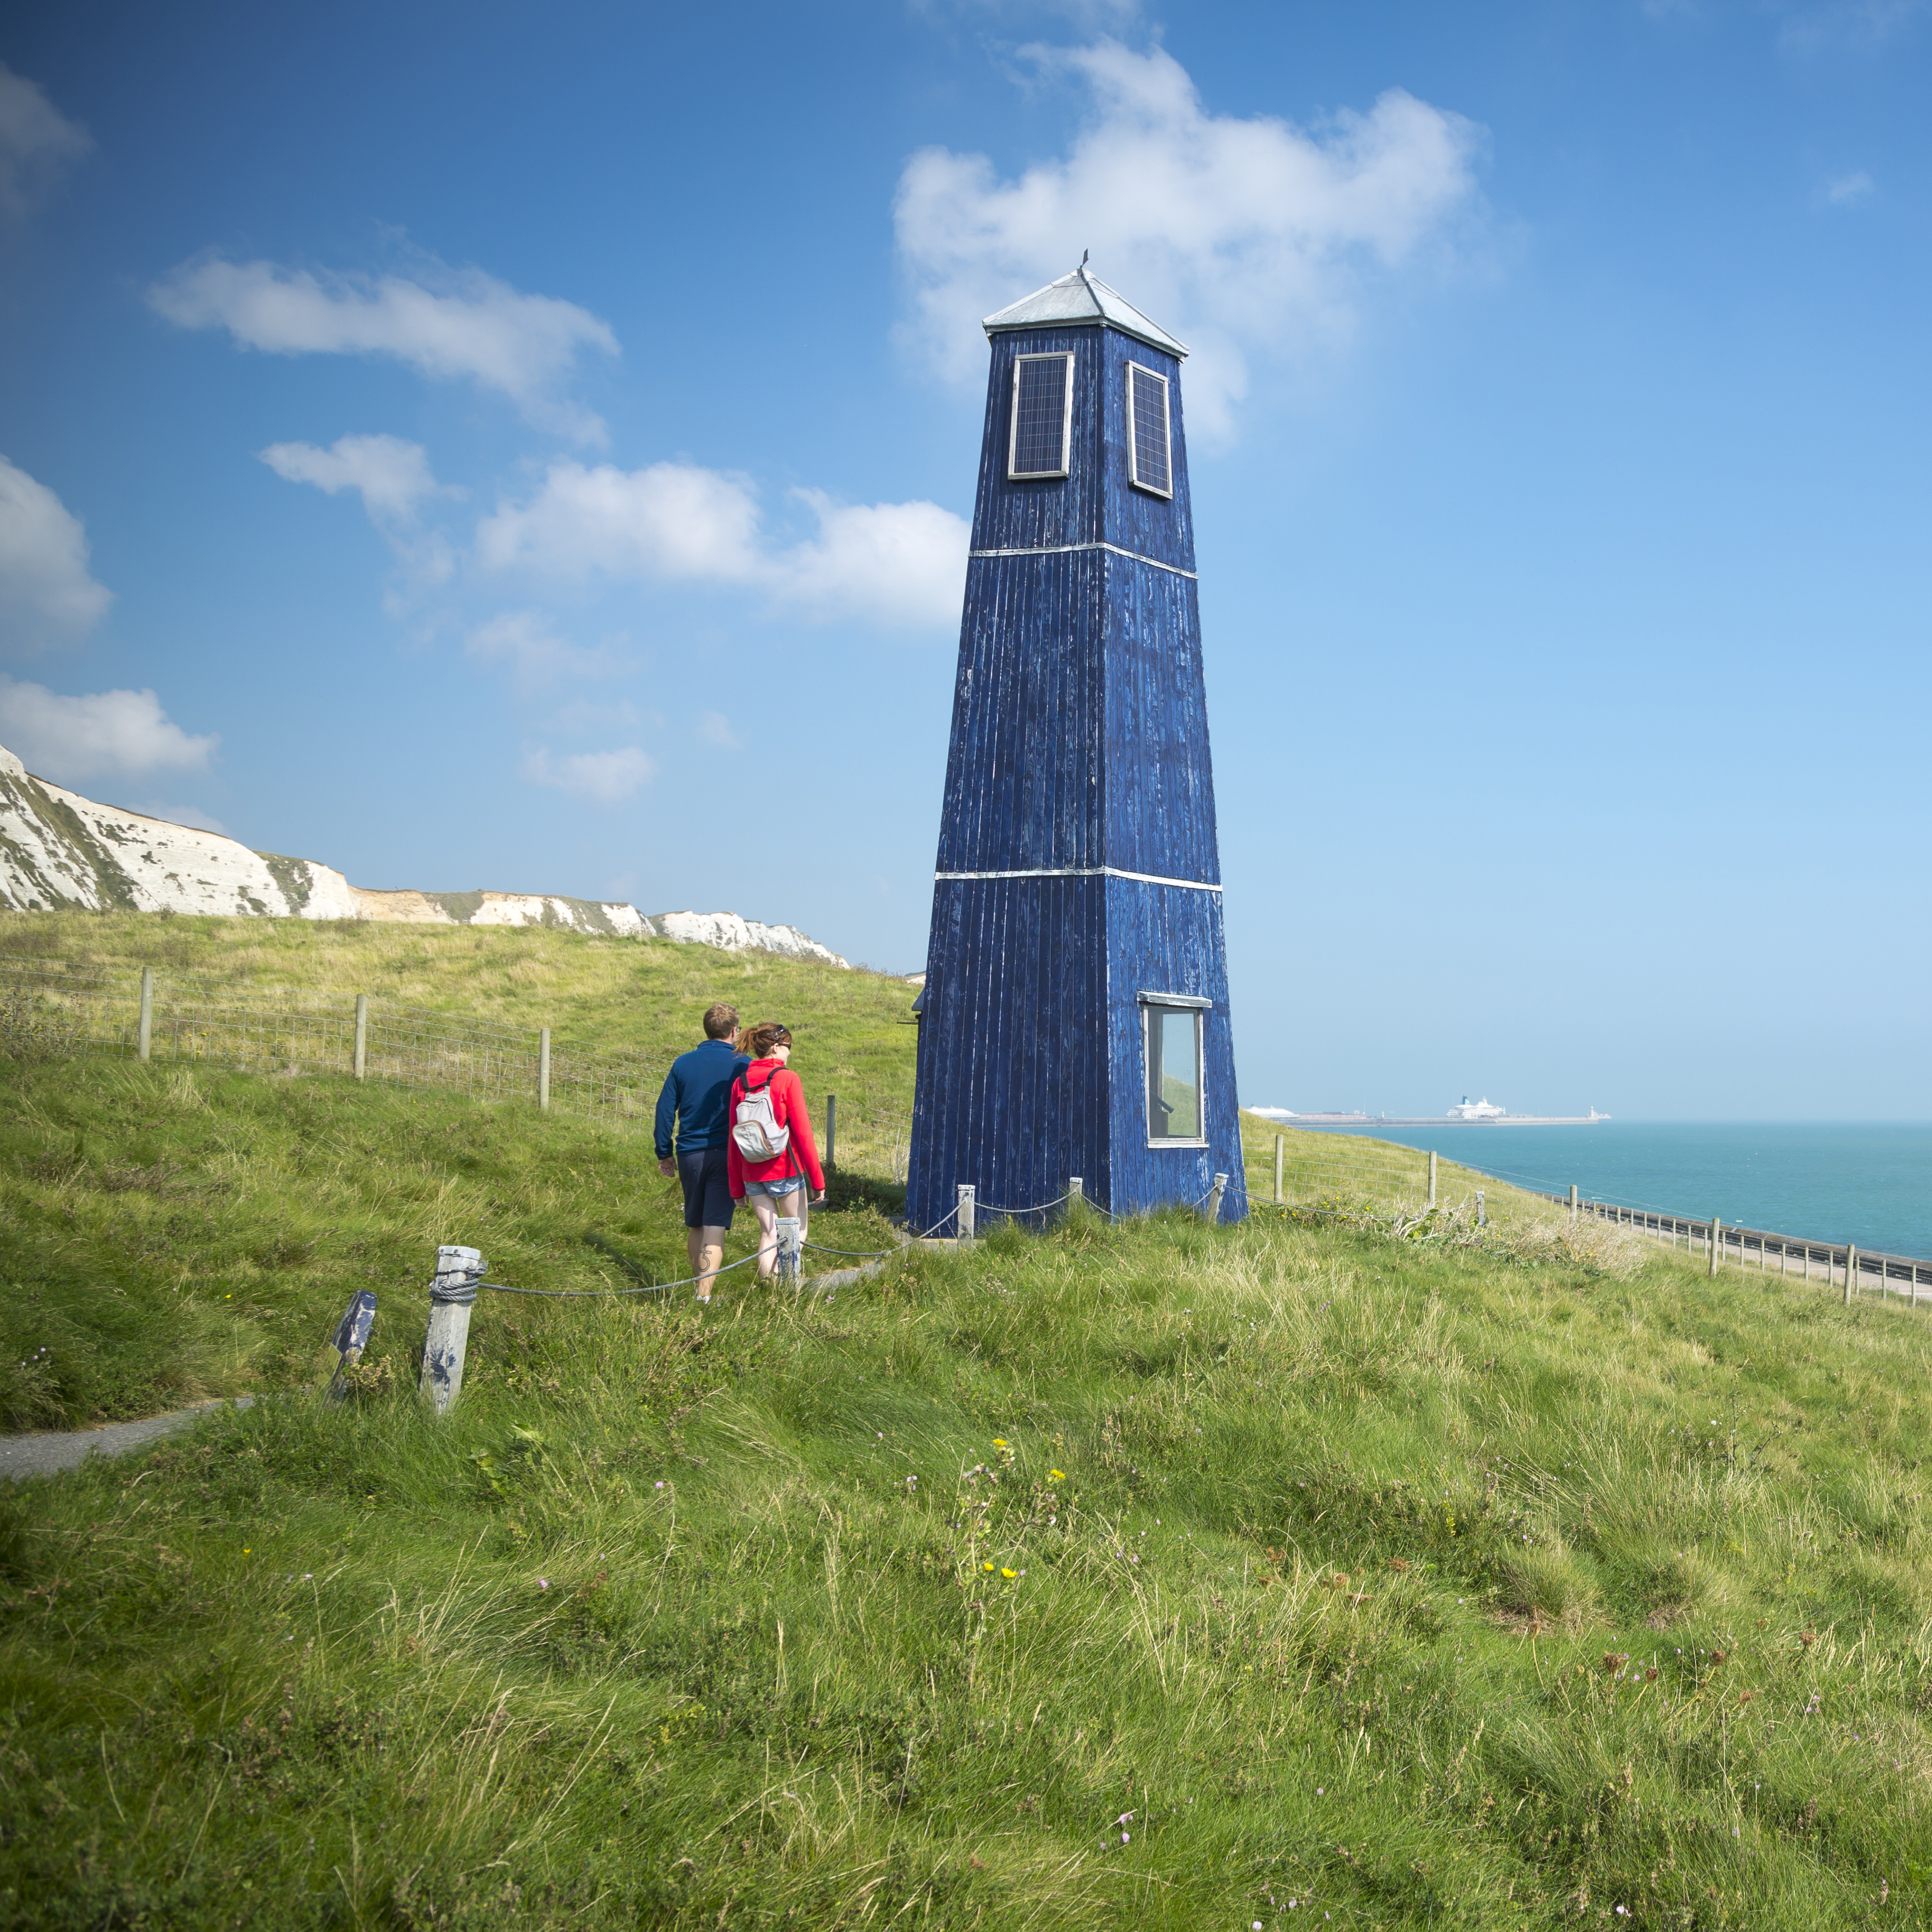 Samphire Hoe, Walking, Dover, Kent